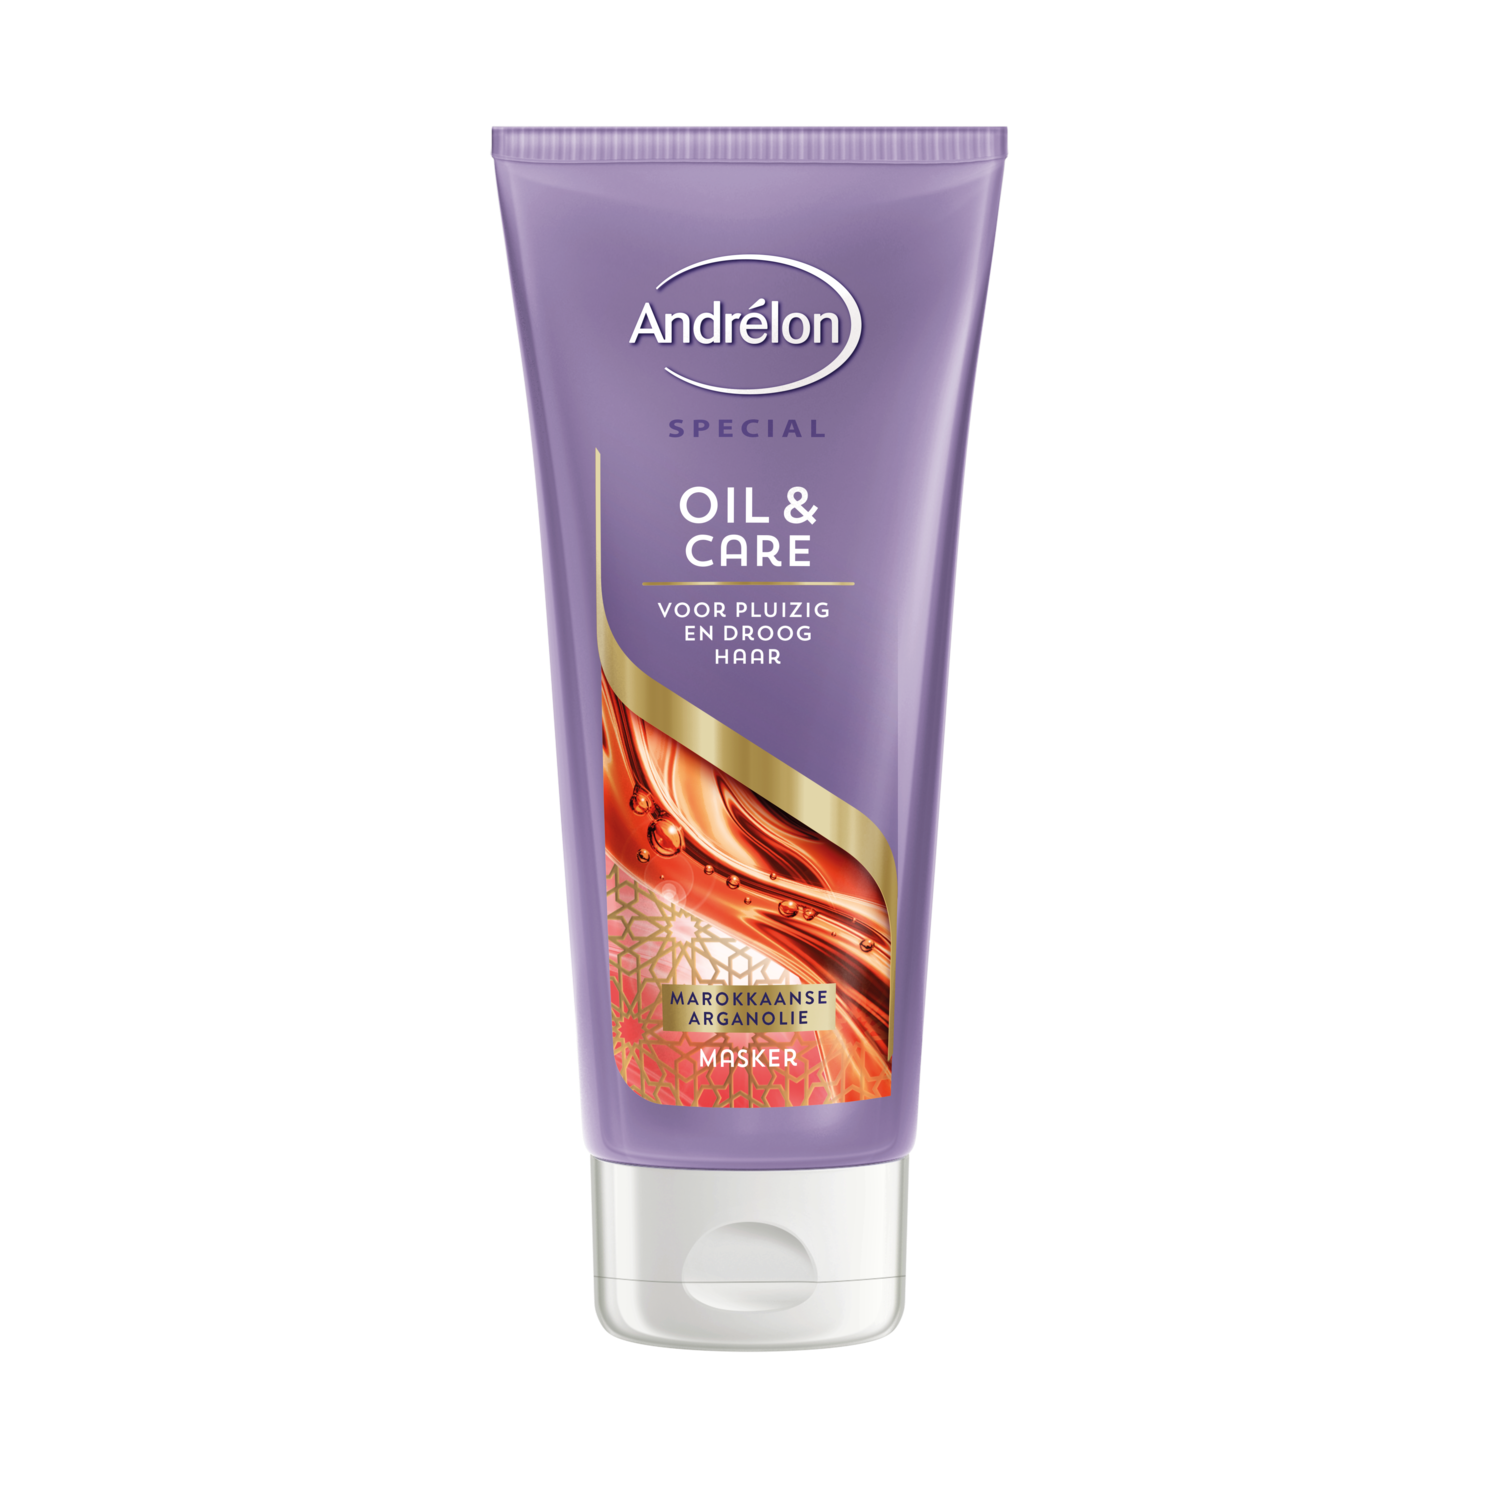 Andrelon Special Oil Care Masker 180ml 8711700748148